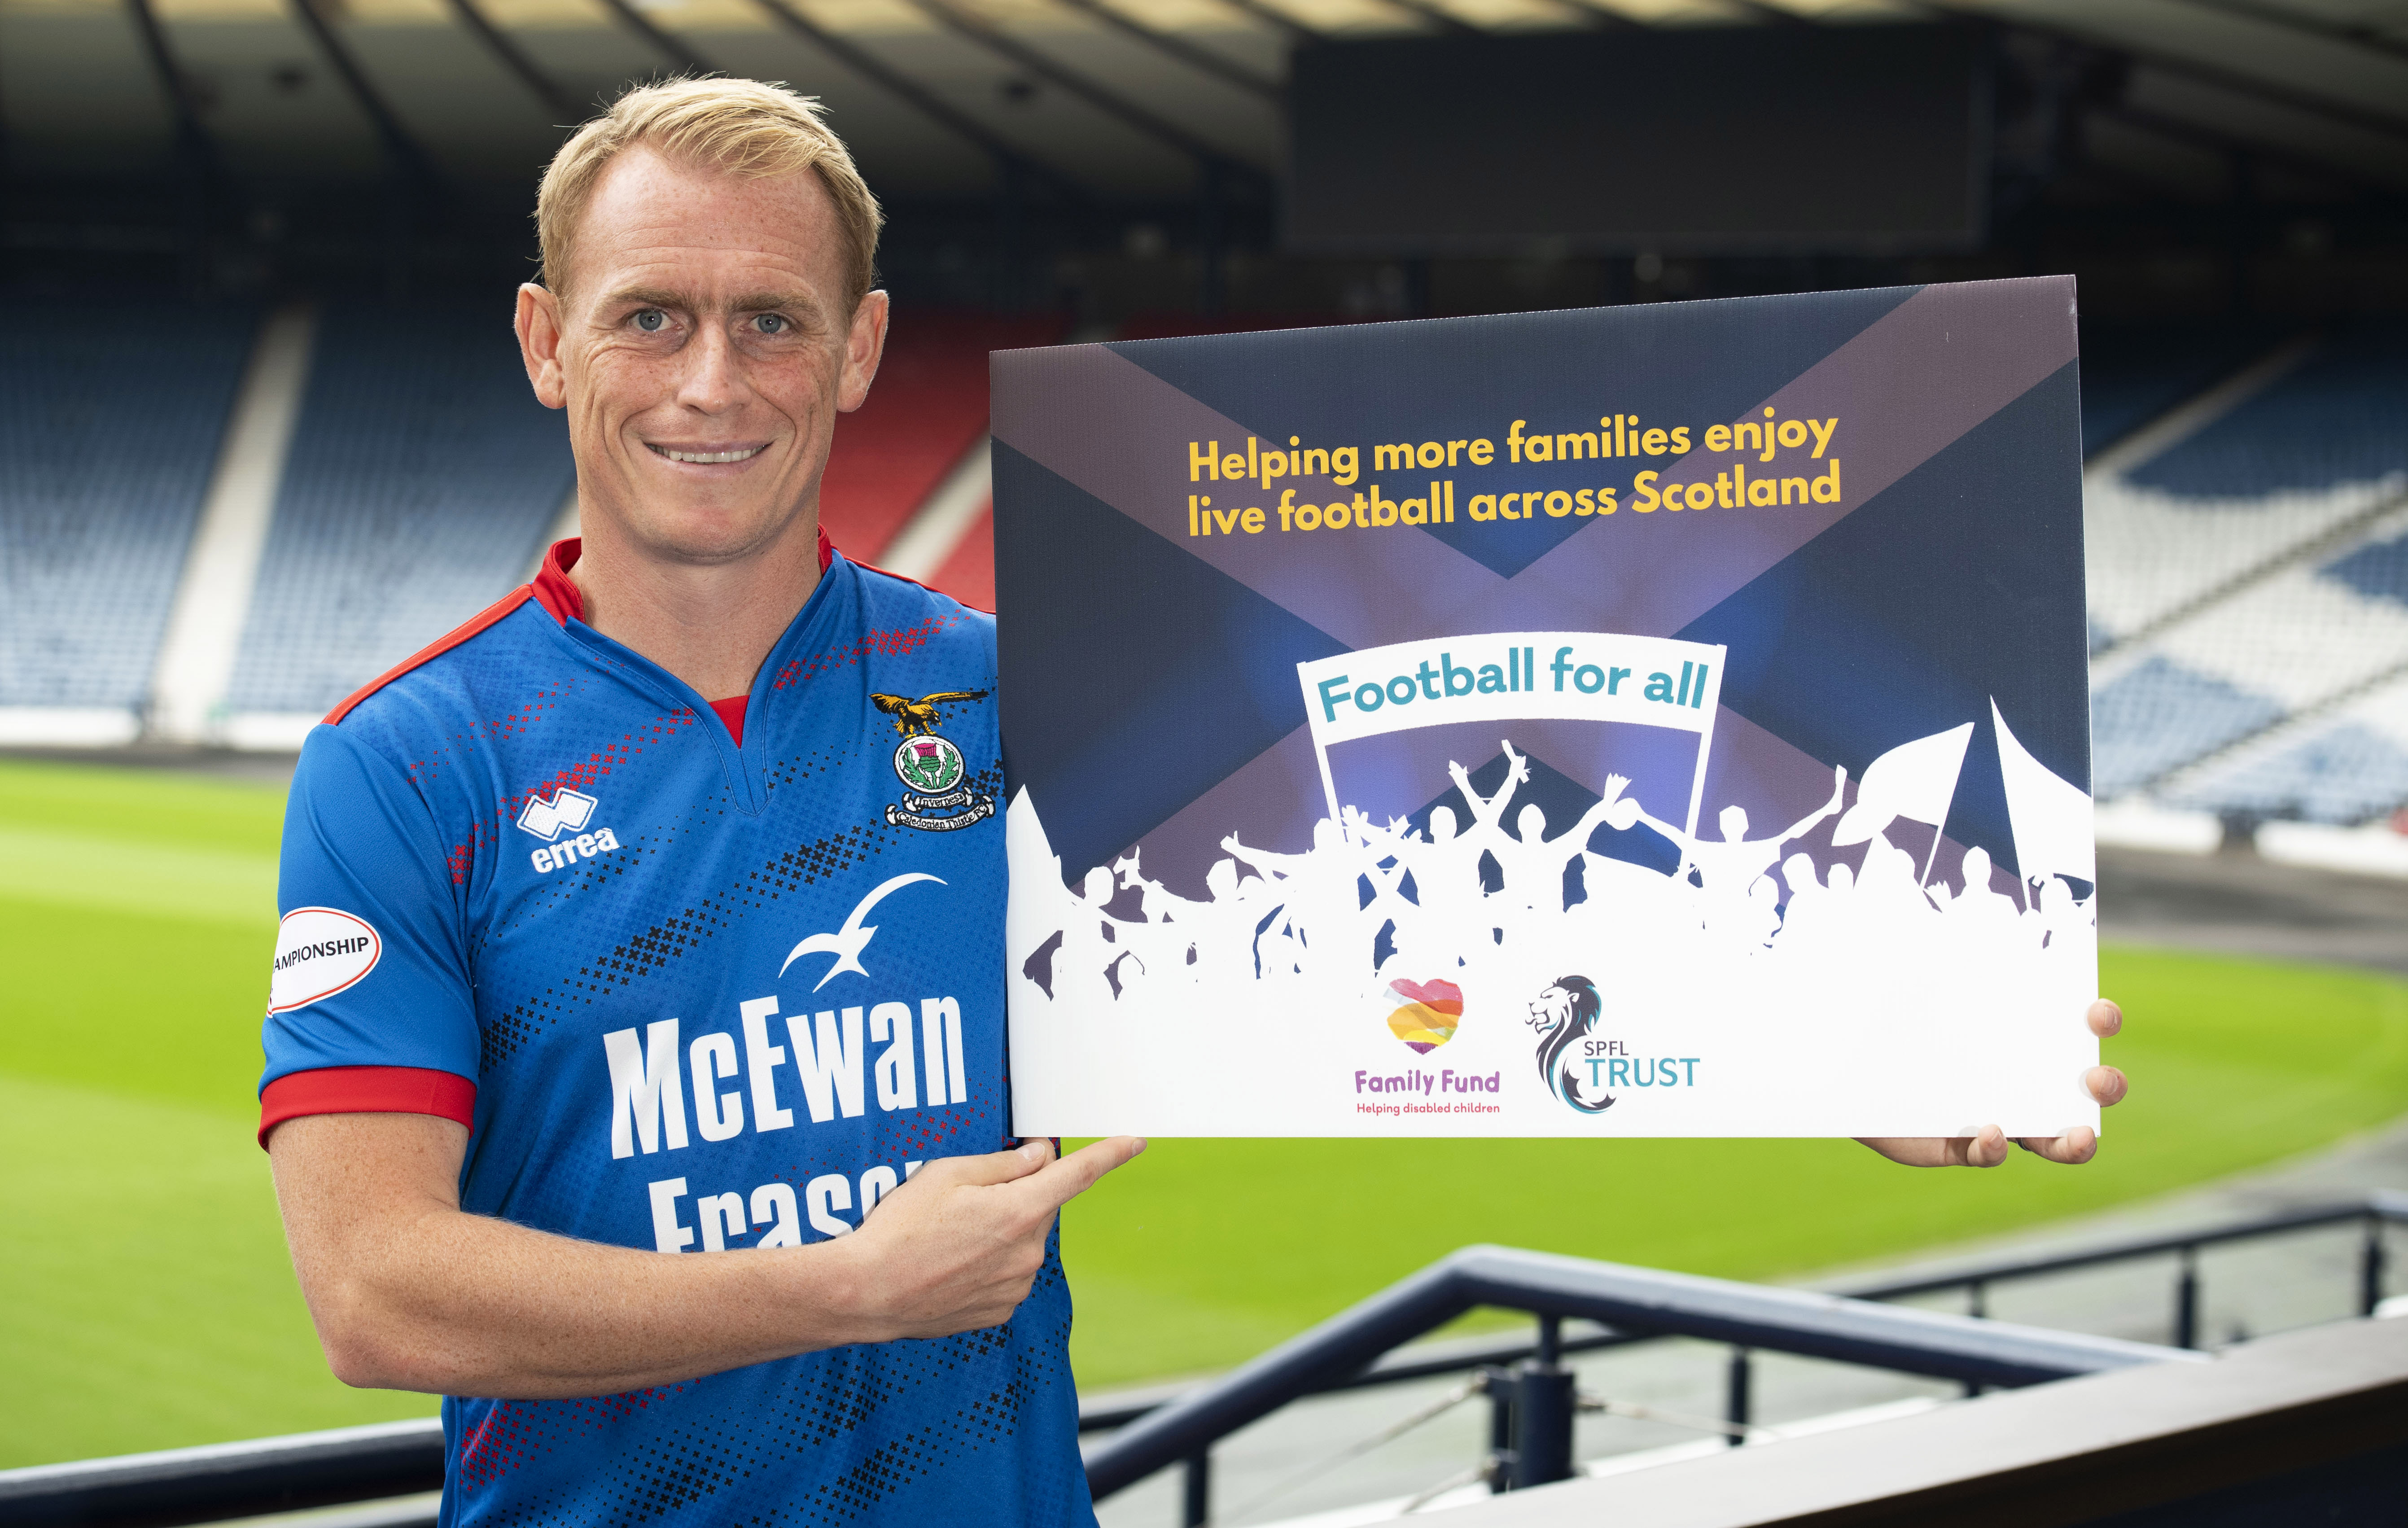 29/07/19 HAMPDEN PARK - GLASGOW Inverness CT's Carl Tremarco at Hampden Park for the 2019/2020 Ladbrokes Championship Captains Photocall.